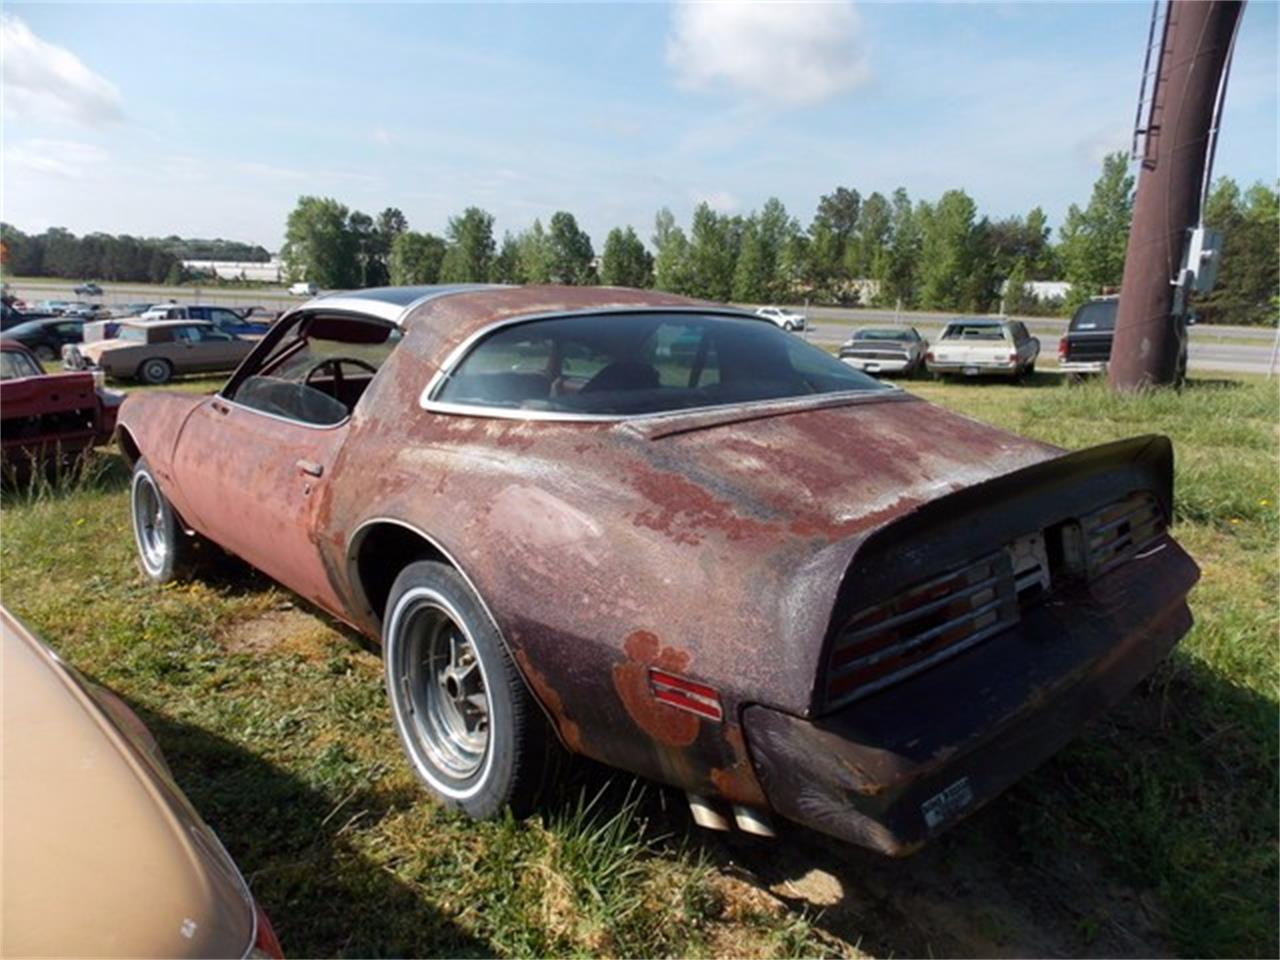 Large Picture of 1978 Pontiac Firebird located in South Carolina - $2,500.00 Offered by Classic Cars of South Carolina - HLDP